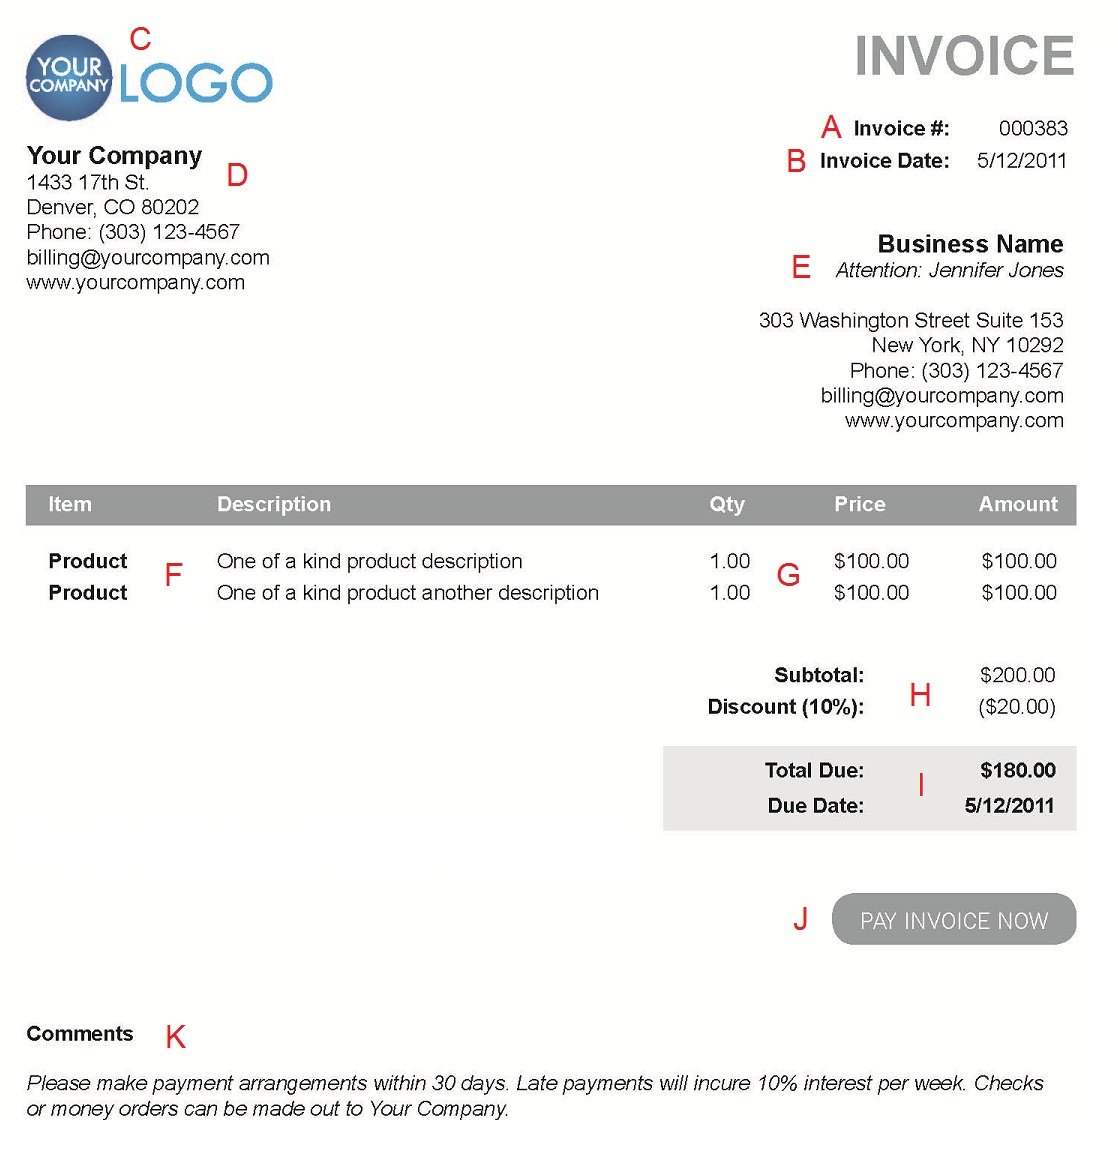 Darkfaderus  Pleasing The  Different Sections Of An Electronic Payment Invoice With Fetching A  With Appealing Army Hand Receipt Example Also Nonreceipt Of Pci Validation In Addition Receipt For Payment Received And How To Make A Receipt On Word As Well As Read Receipts Outlook  Additionally Cash Receipt Accounting From Paysimplecom With Darkfaderus  Fetching The  Different Sections Of An Electronic Payment Invoice With Appealing A  And Pleasing Army Hand Receipt Example Also Nonreceipt Of Pci Validation In Addition Receipt For Payment Received From Paysimplecom